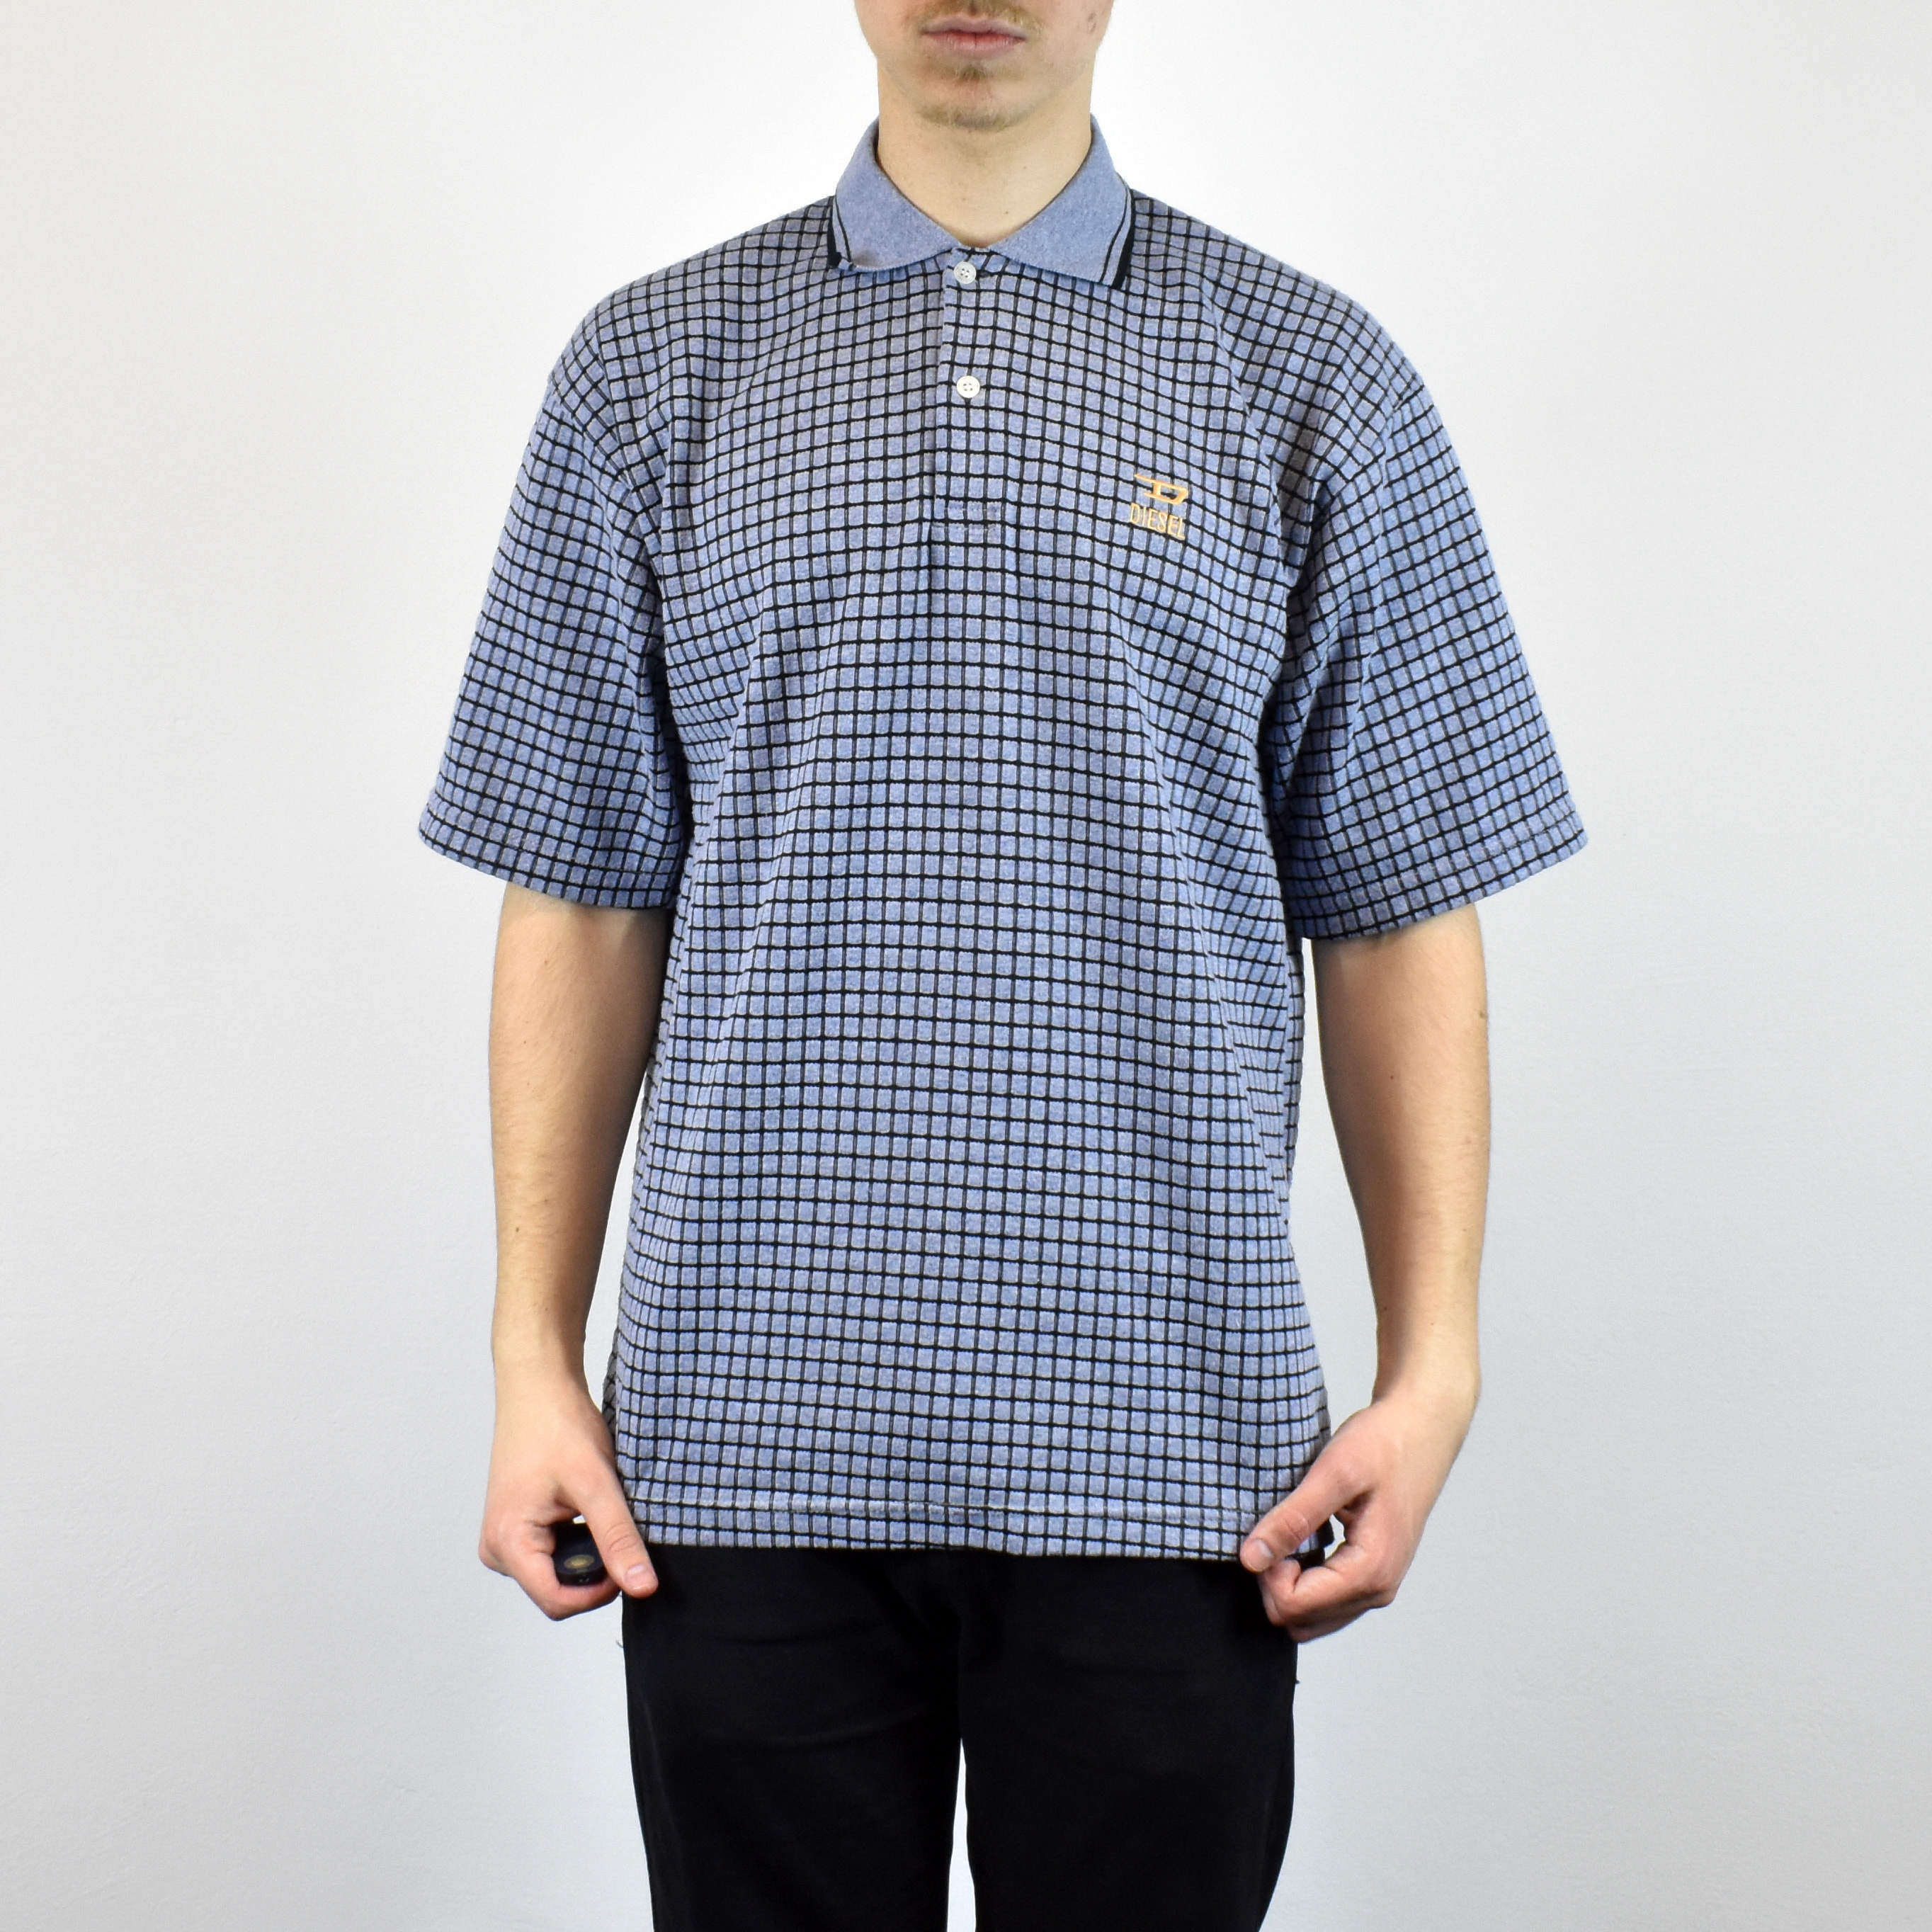 Unisex Vintage checkered Diesel polo shirt in blue has a small logo on the front size L